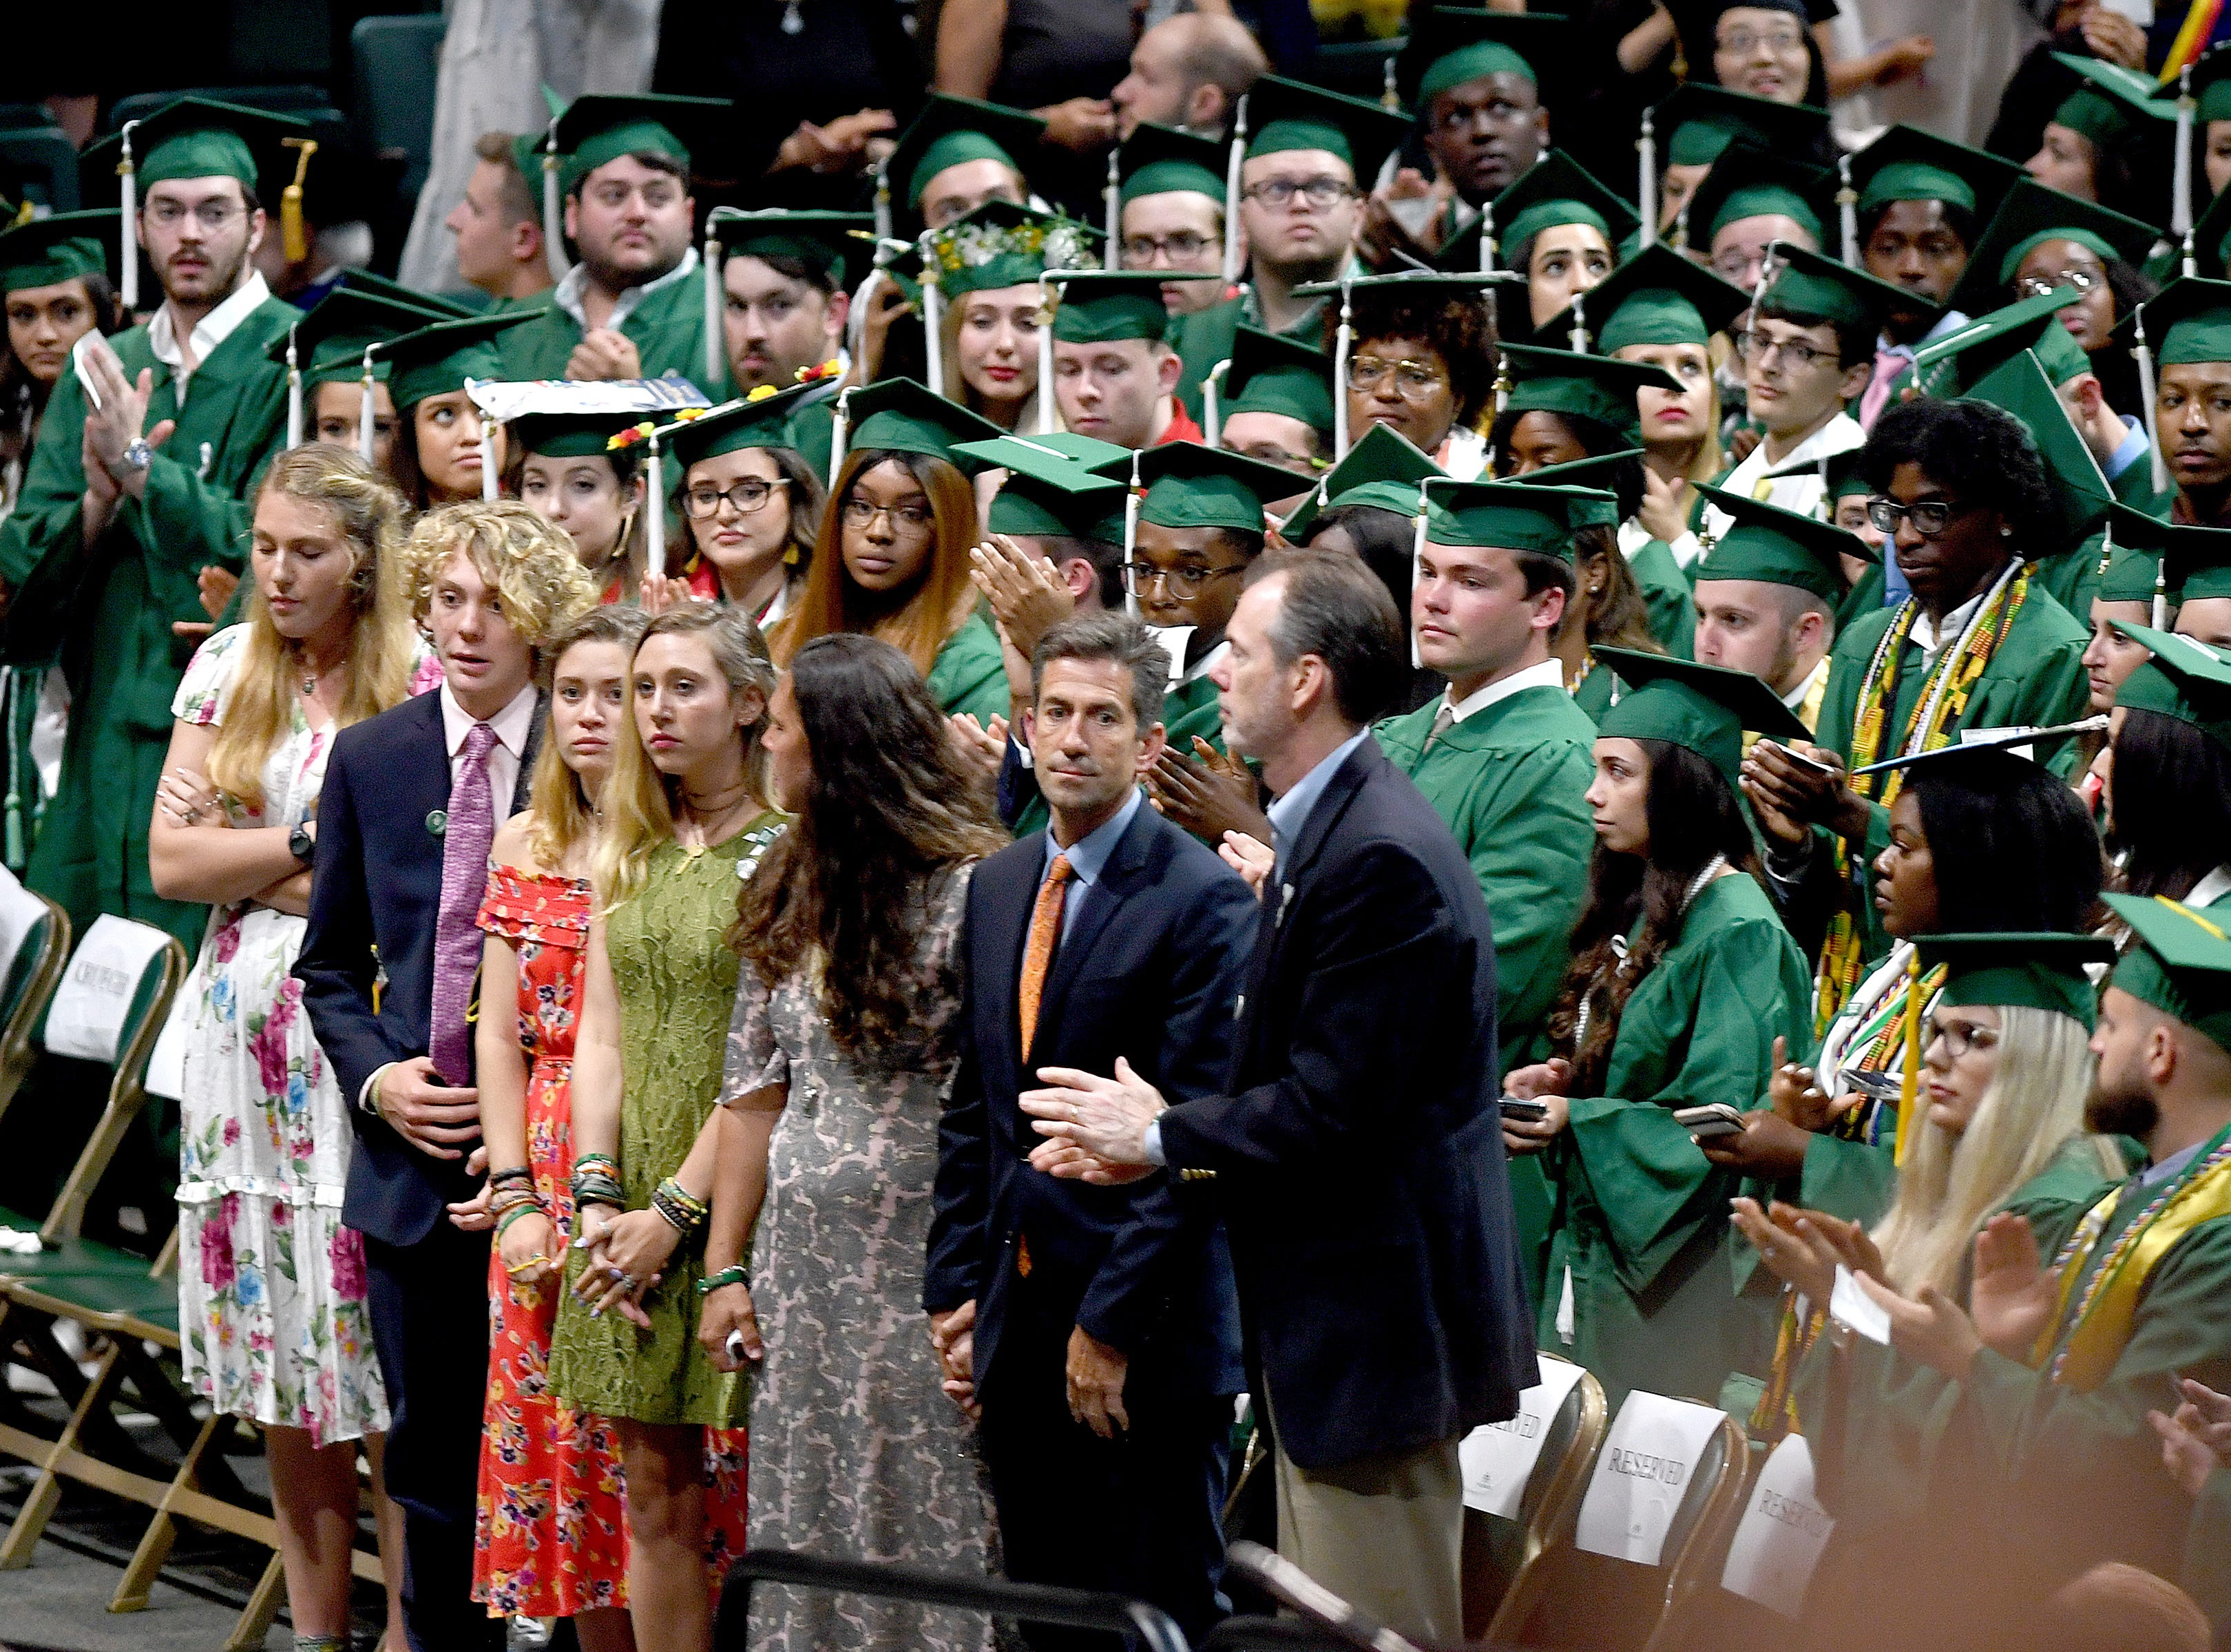 The family of UNC Charlotte shooting victim Riley Howell receives a standing ovation from graduates as he and his family are honored during the University's Commencement ceremony for the College of Liberal Arts and Sciences in Charlotte on May 11, 2019.